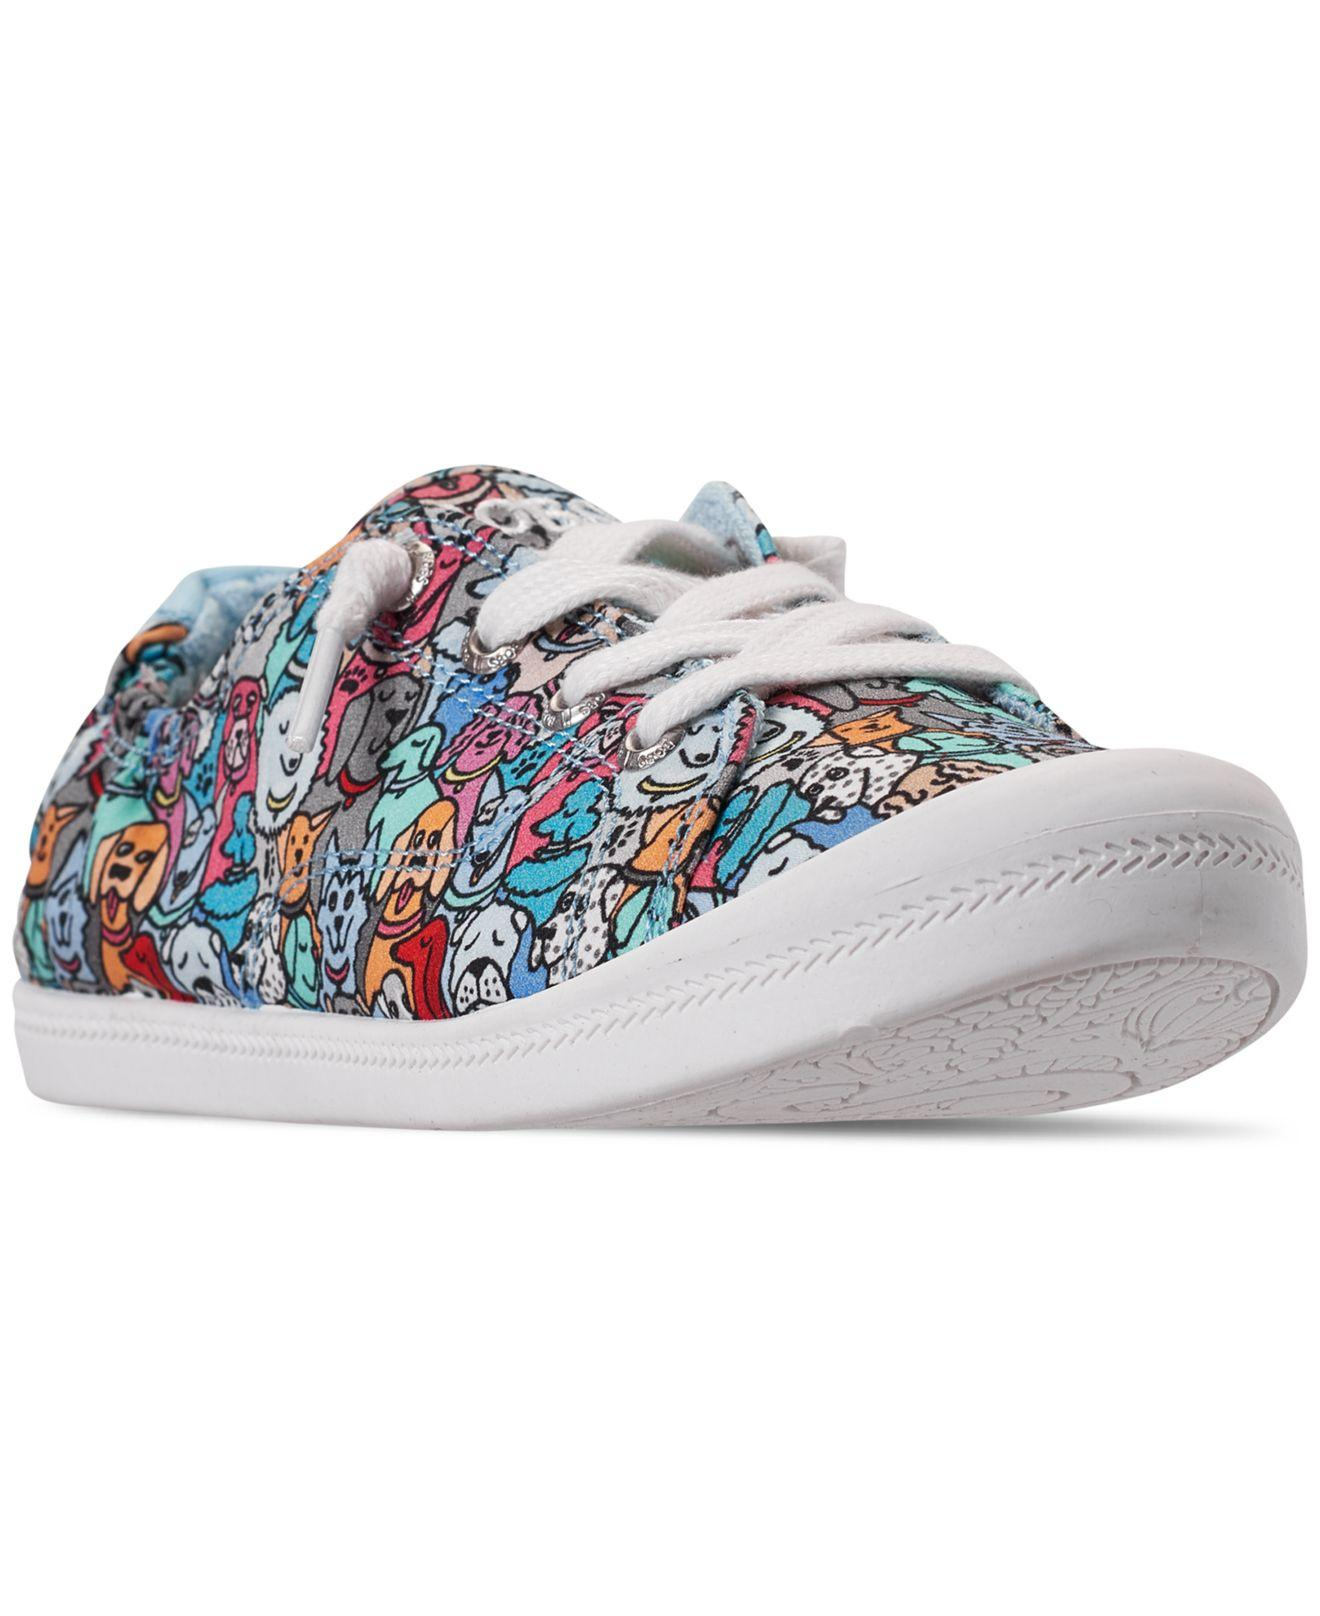 aed475a14fea Lyst - Skechers Bobs Beach Bingo - Woof Pack Bobs For Dogs And Cats ...